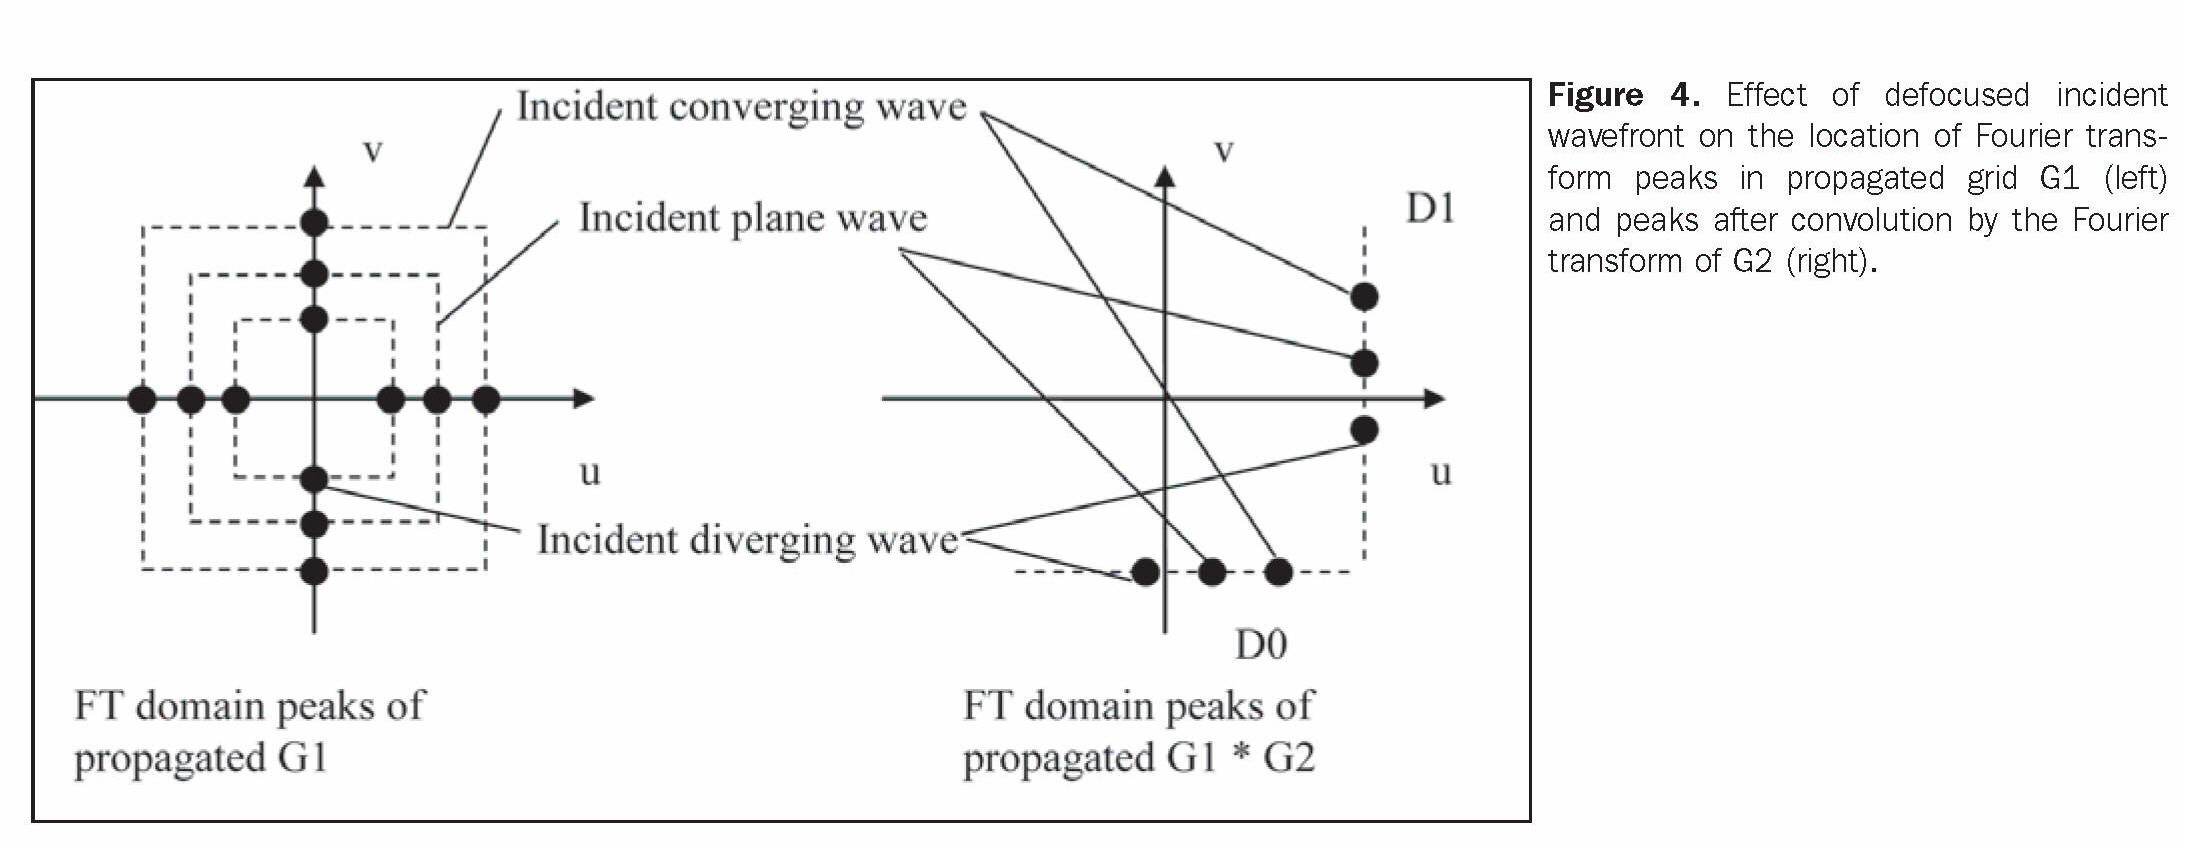 Figure 4. Effect of defocuseci incident wavefront on the location of Fourier transform peaks in propagated grid Gl (left) and peaks after convolution by the Fourier transform of G2 (right).